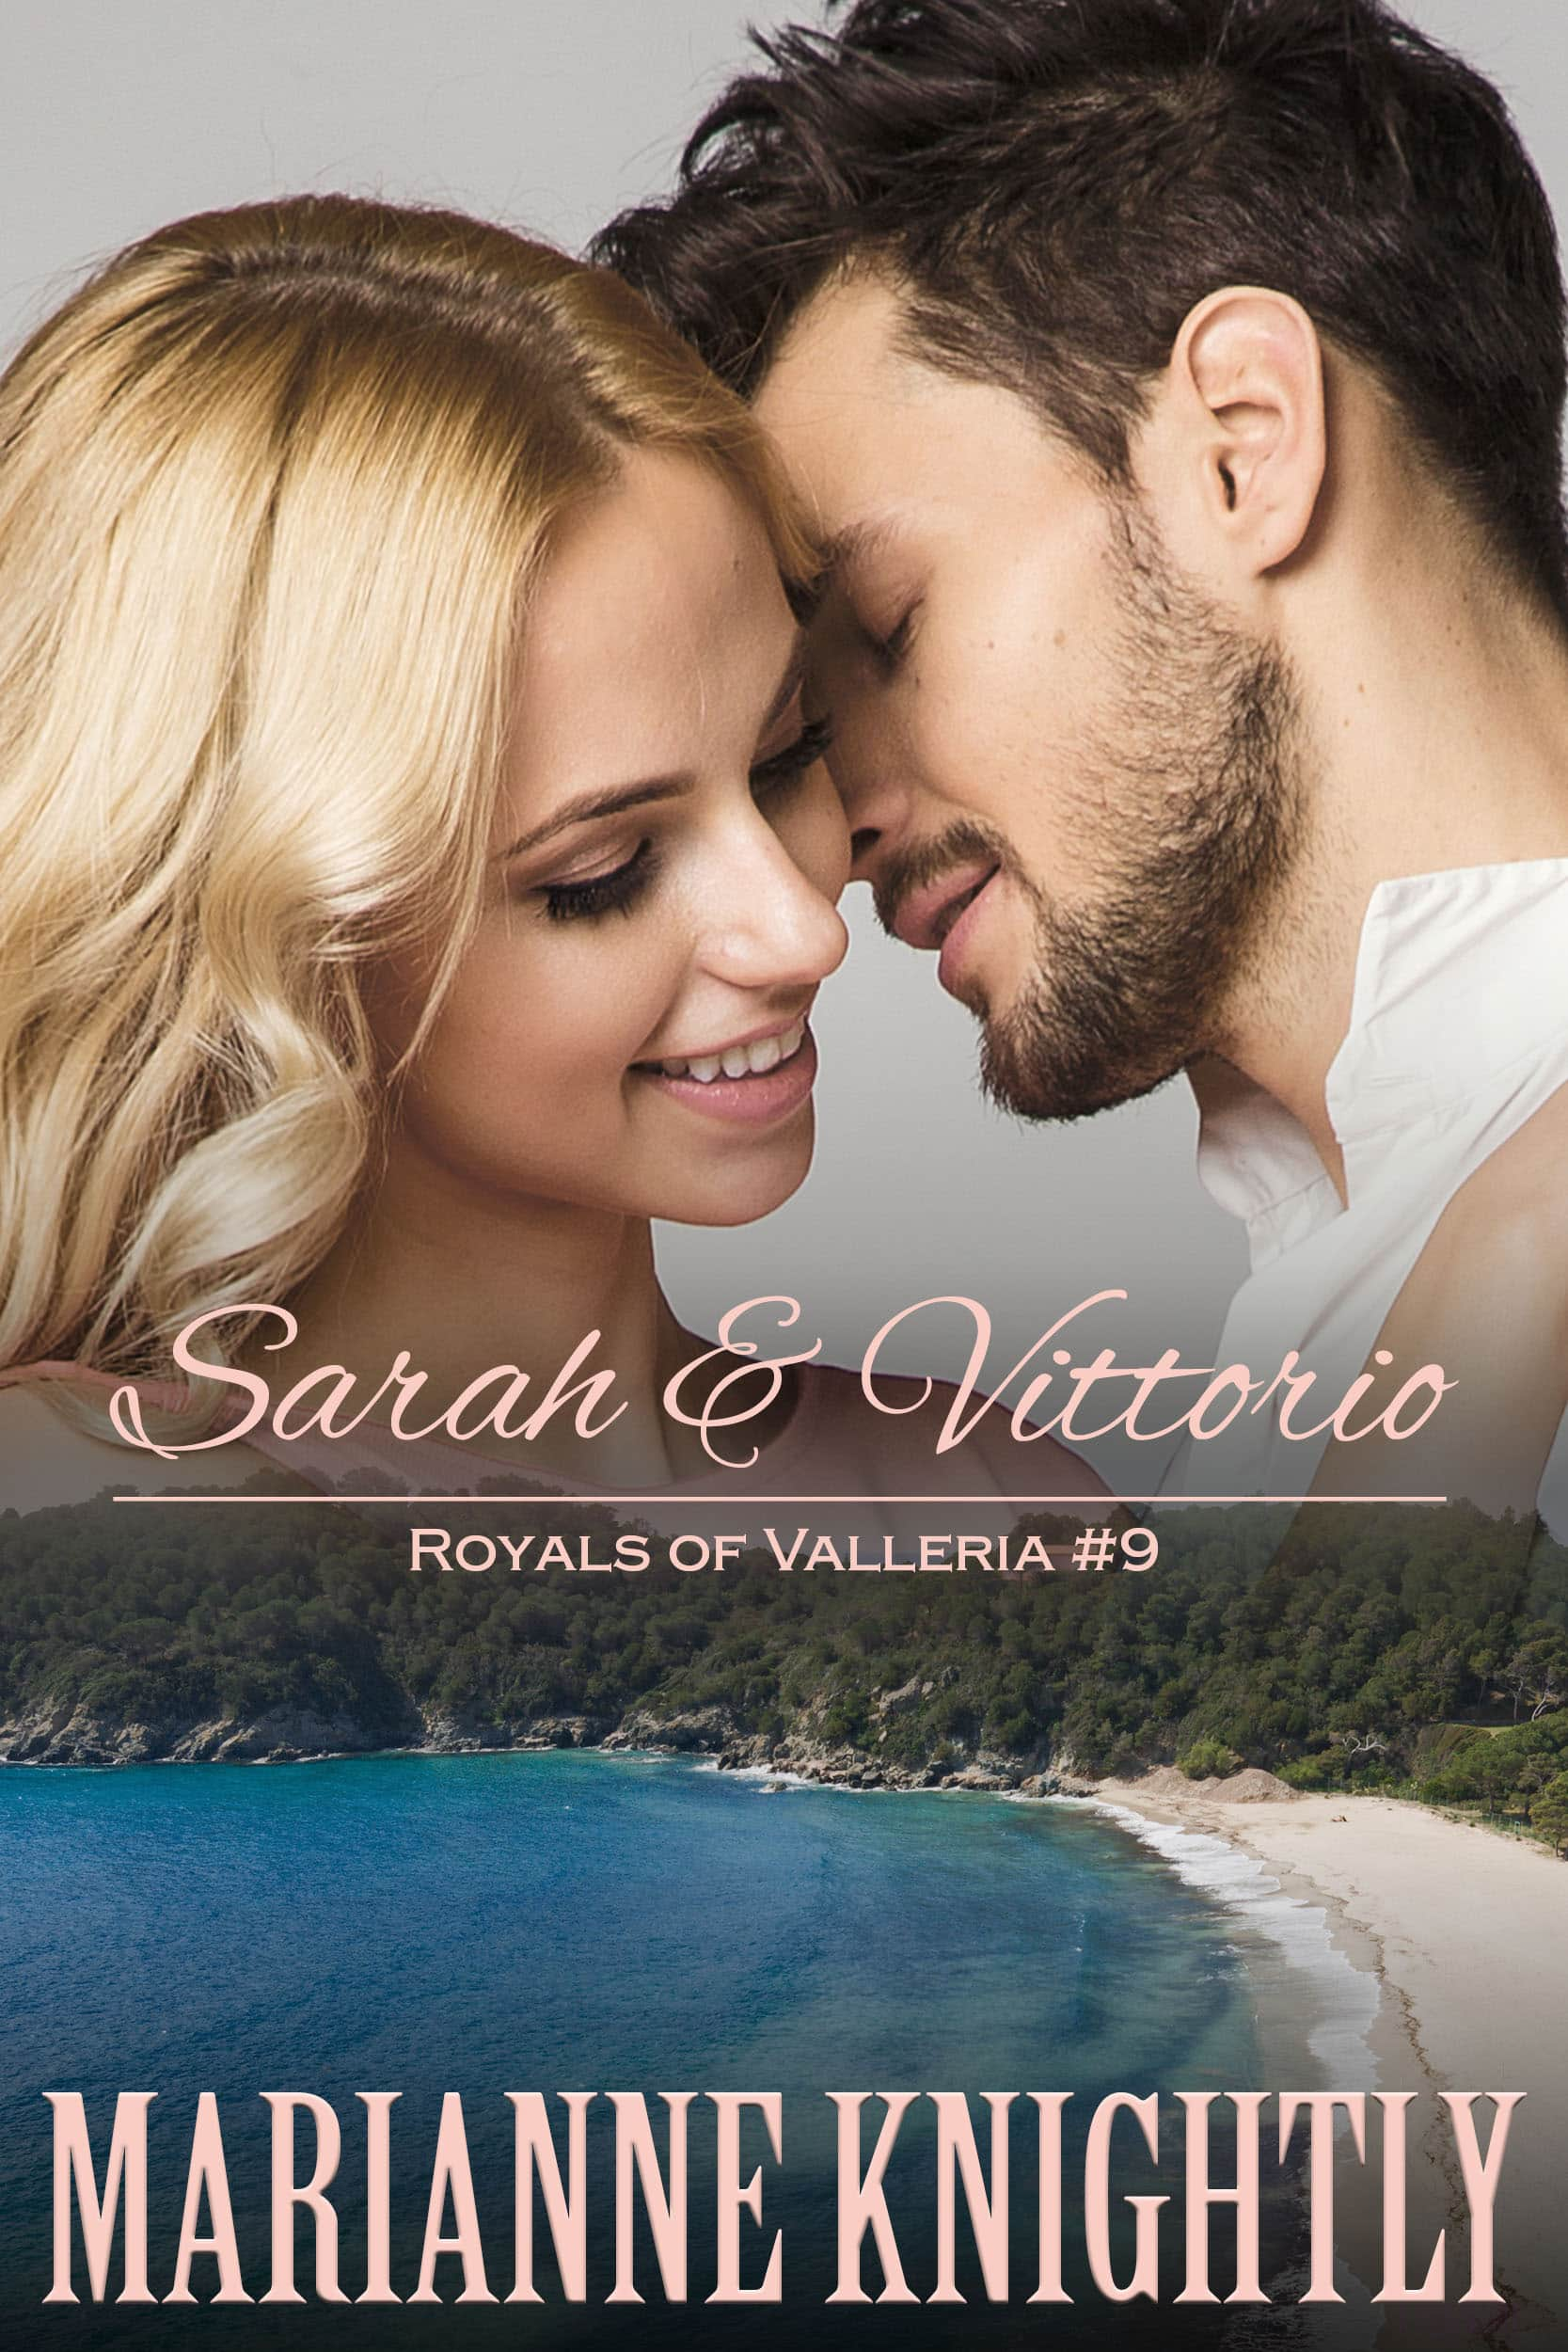 Sarah & Vittorio (Royals of Valleria #9)